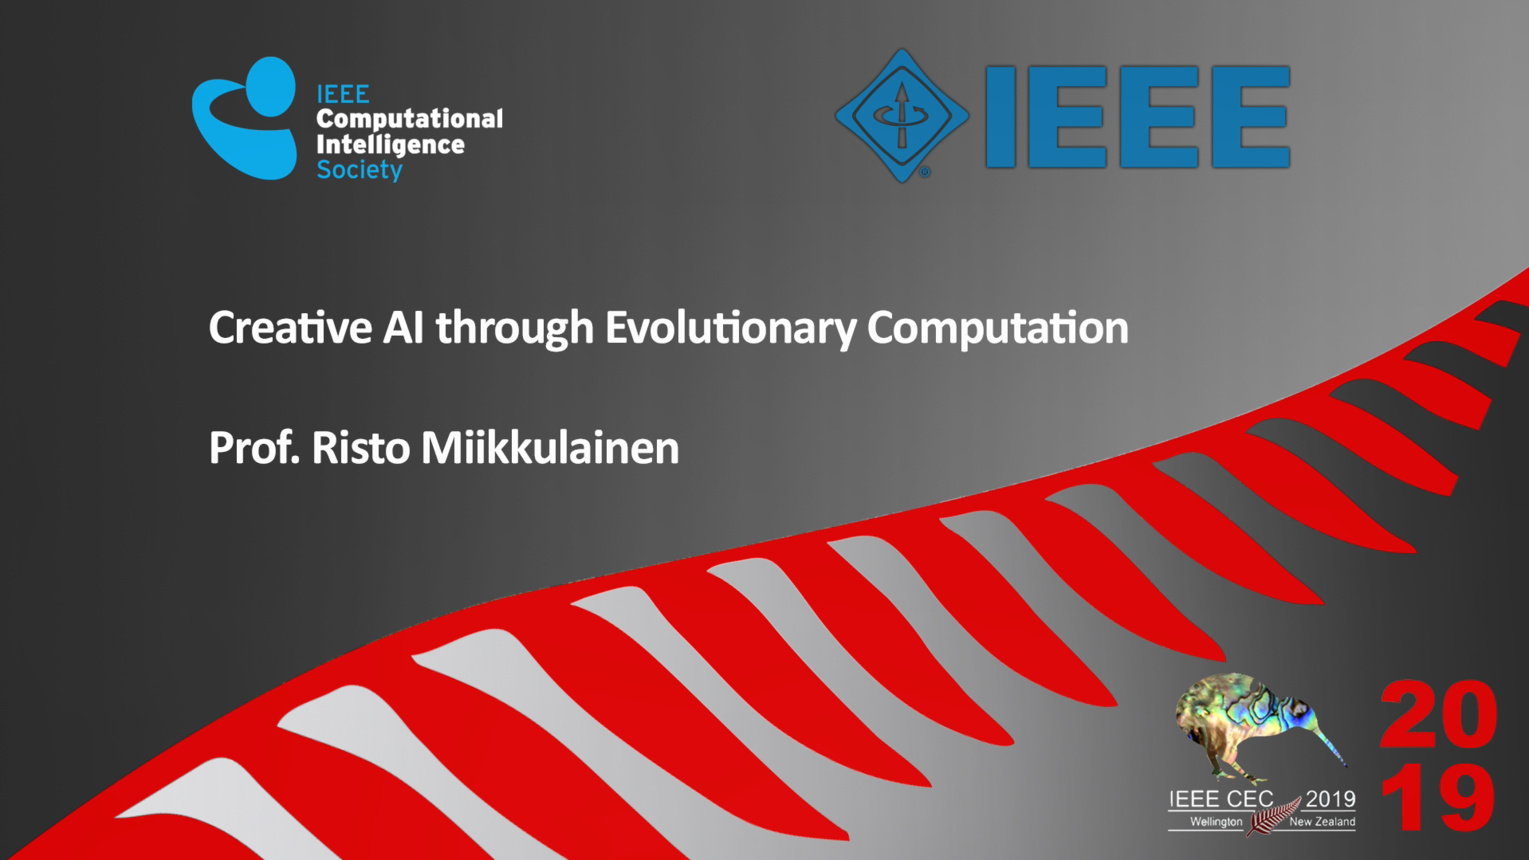 Creative AI through Evolutionary Computation